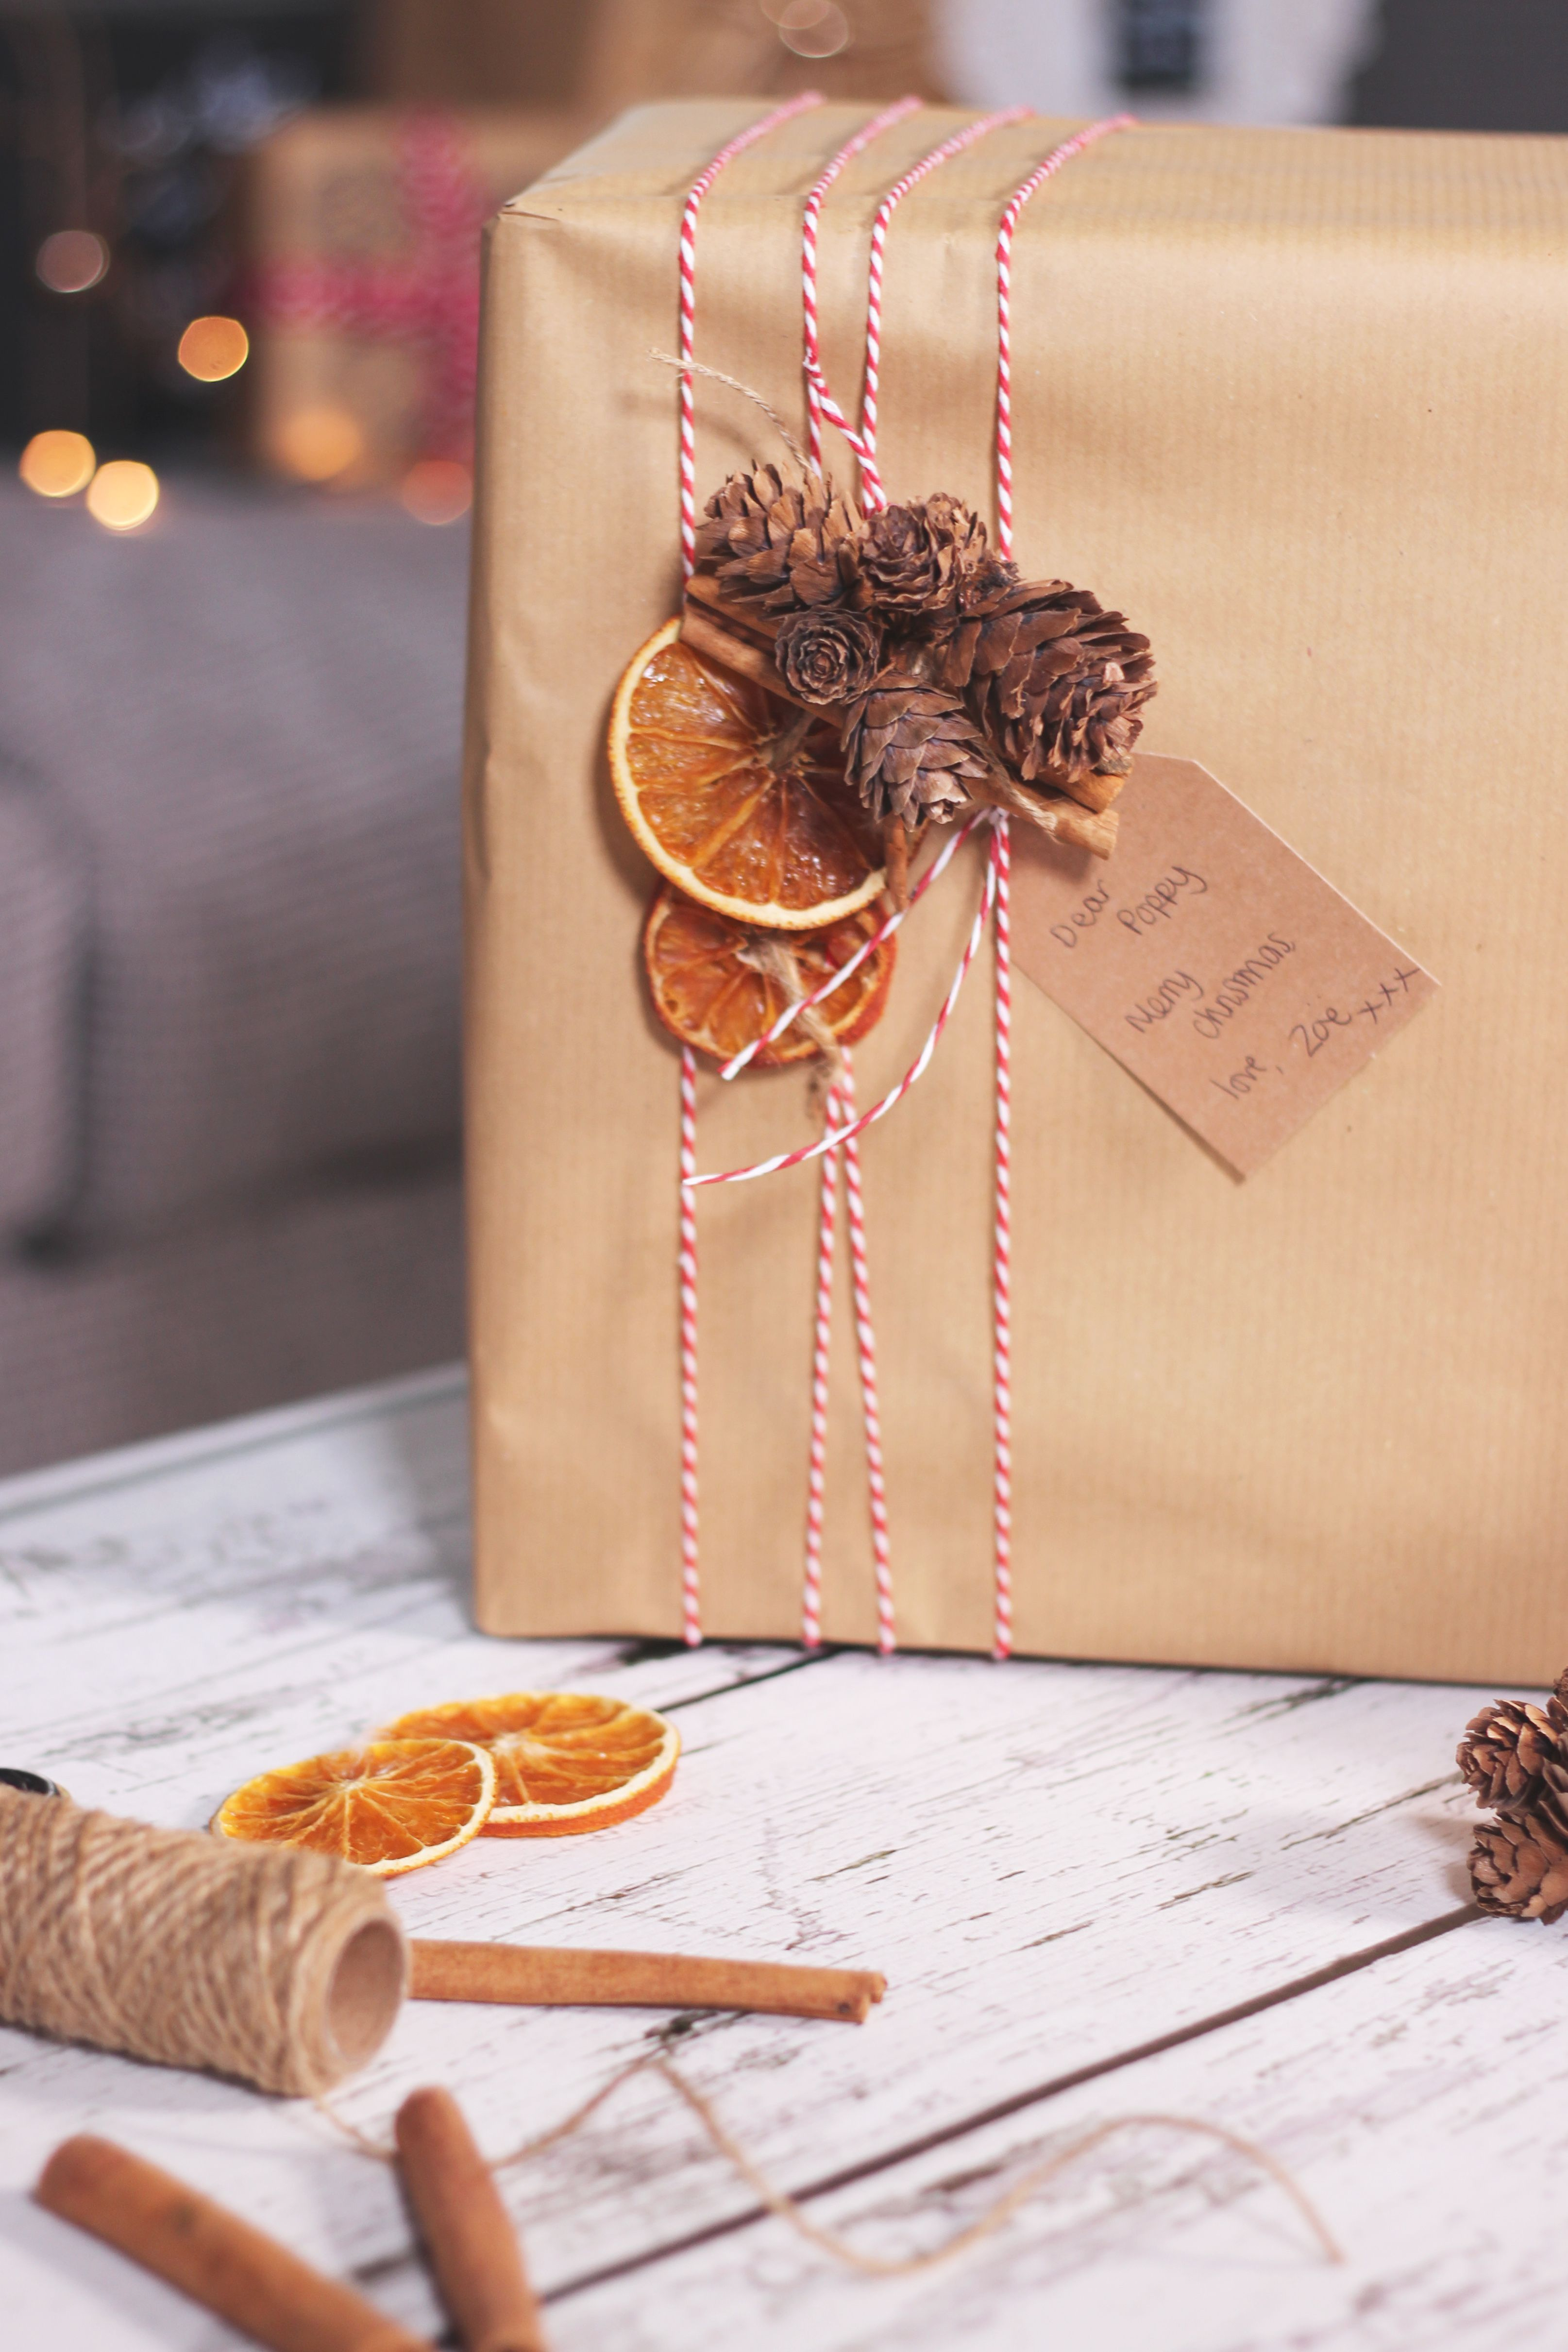 Gift Wrapping Ideas | Organising Ideas | Pinterest | Gift wrapping ...